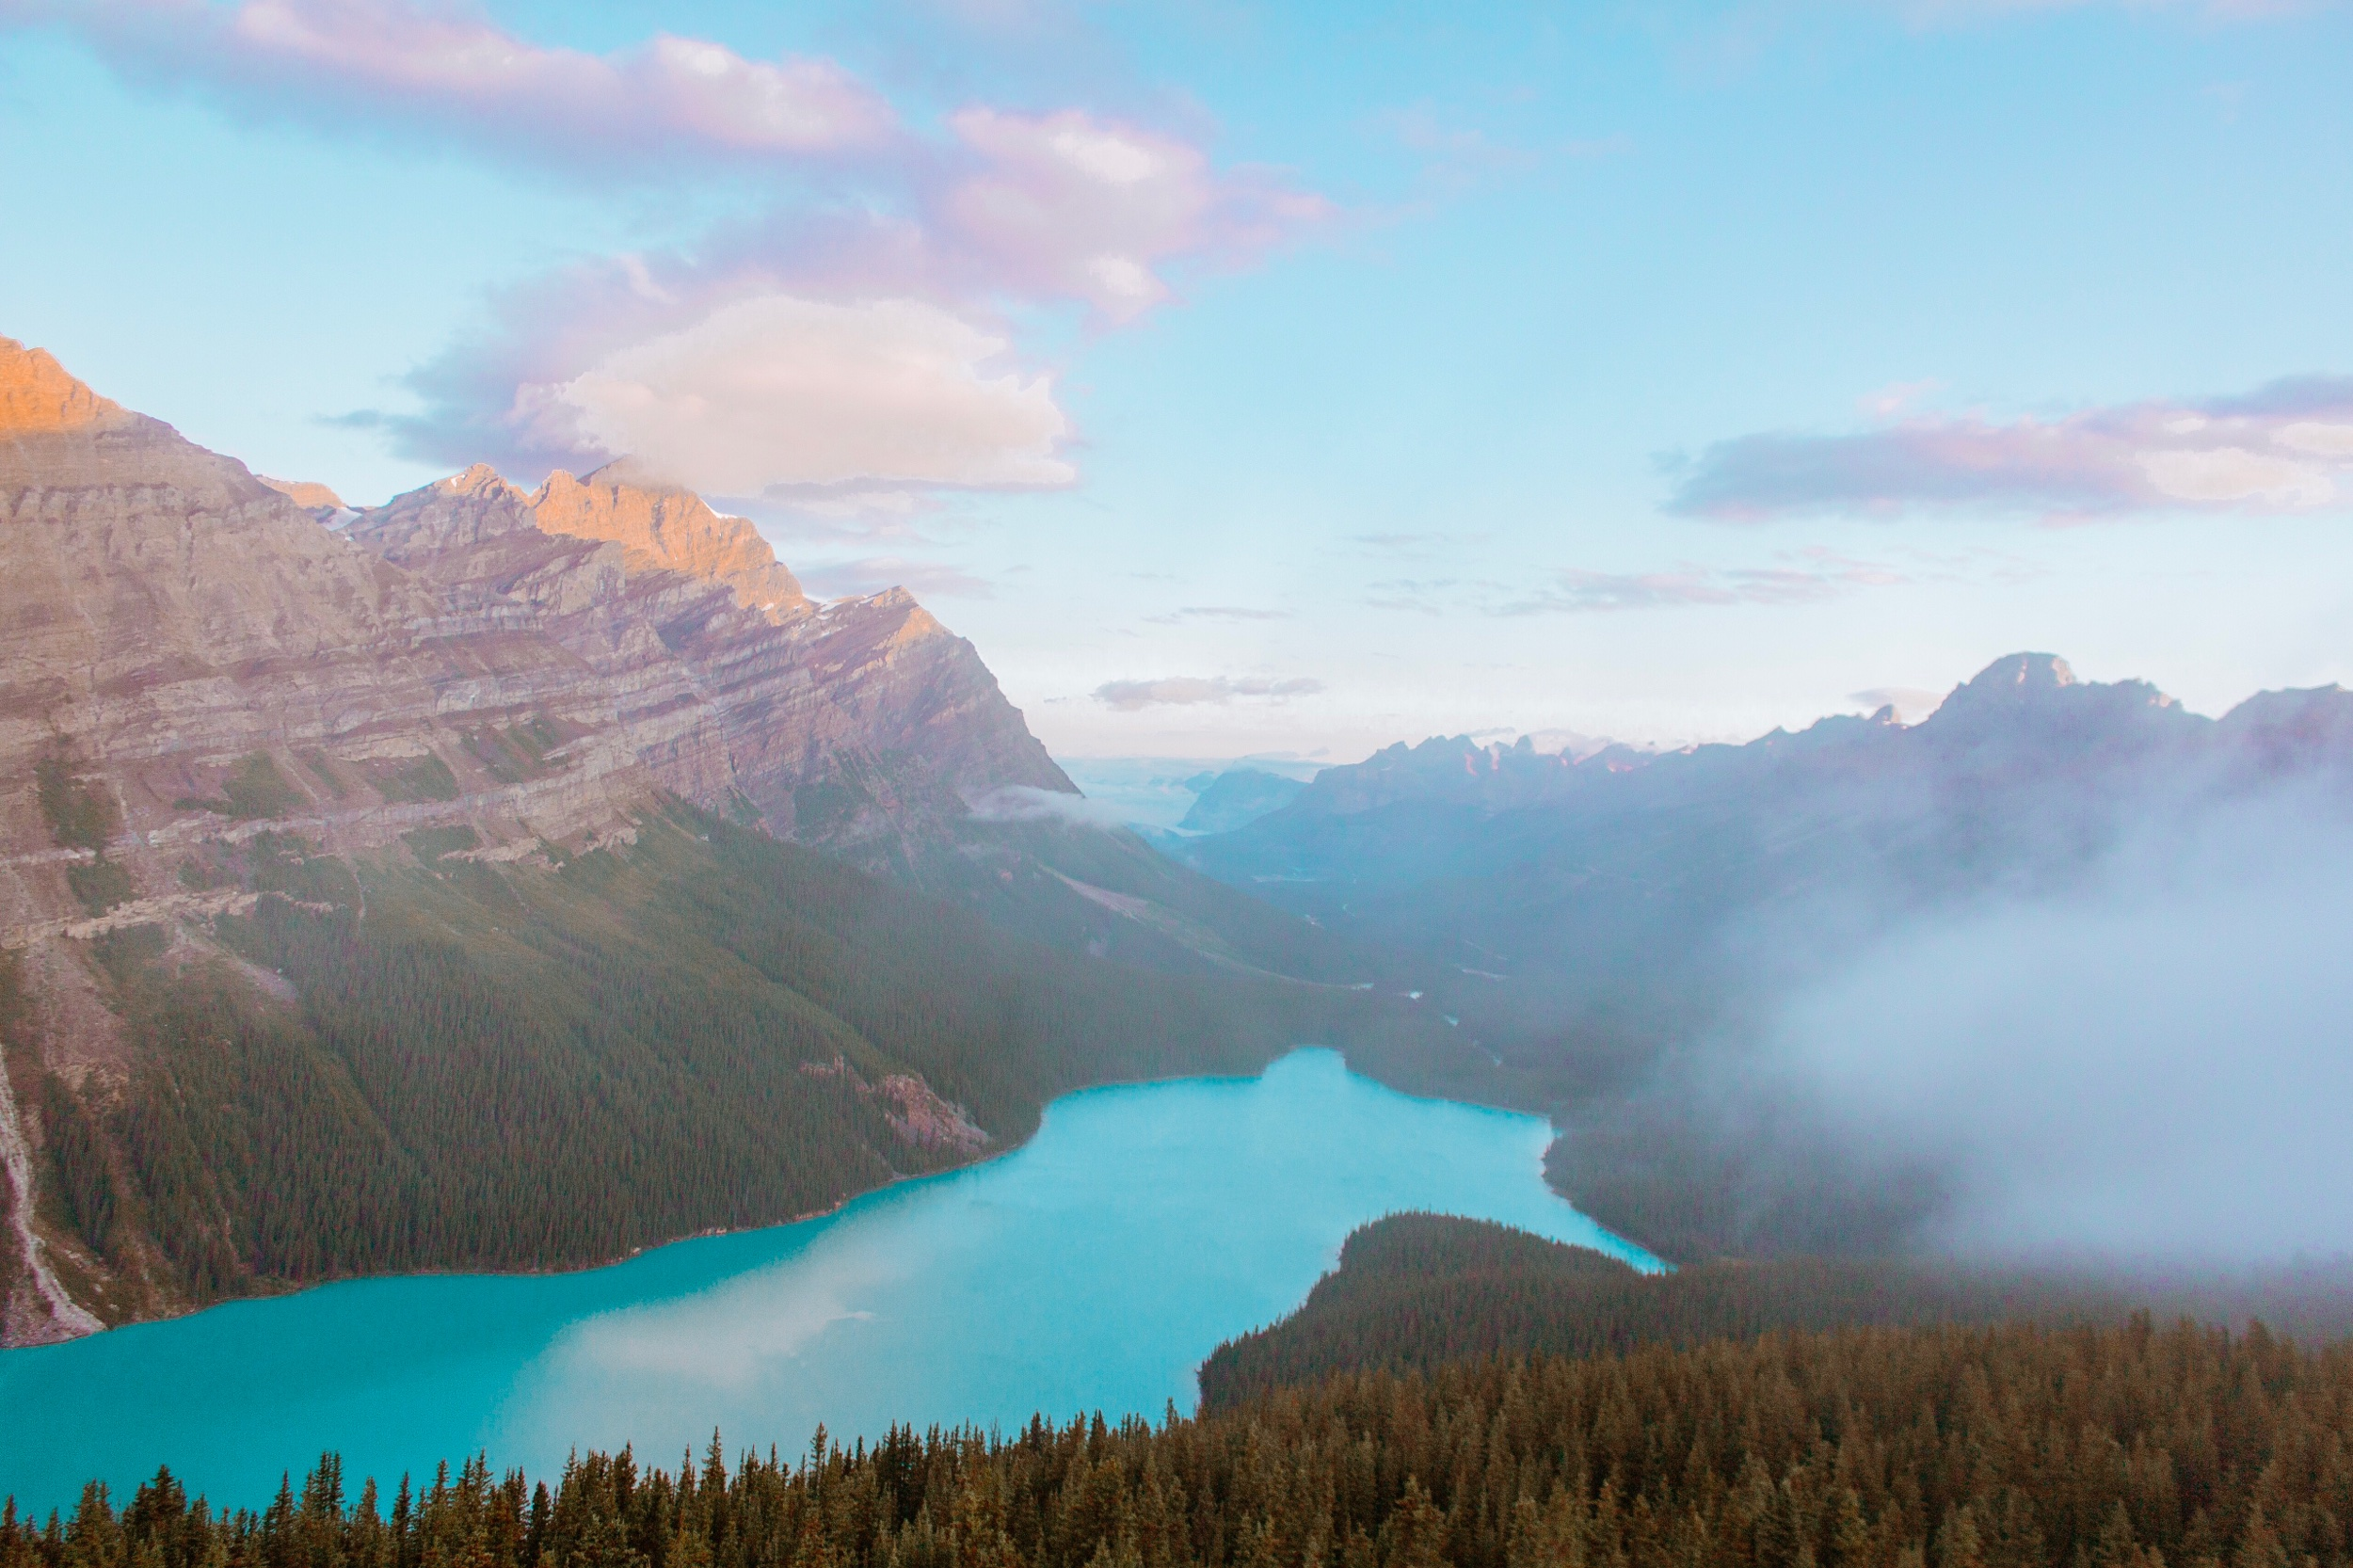 Peyto Lake at Sunrise from the Bow Summit Lookout